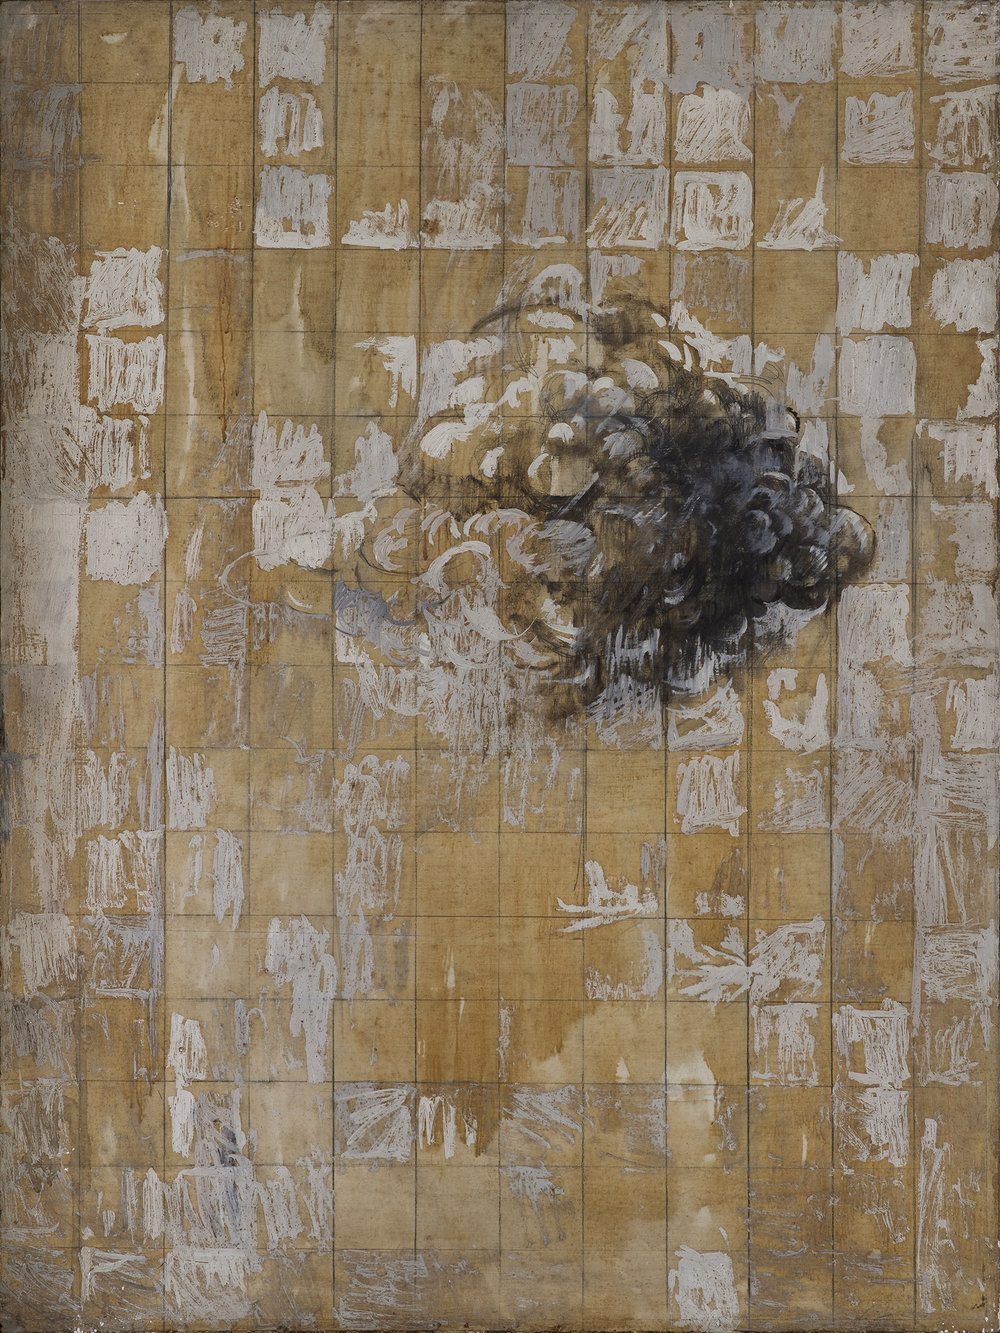 Untitled, oil and graphite on board, 91.5 c 122 cmm, 1981. Courtesy of Nurjahan Akhlaq. Photography Asif Khan & Richard Seck. The grid technique employed here was traditionally used for proportion in Mughal miniature paintings.